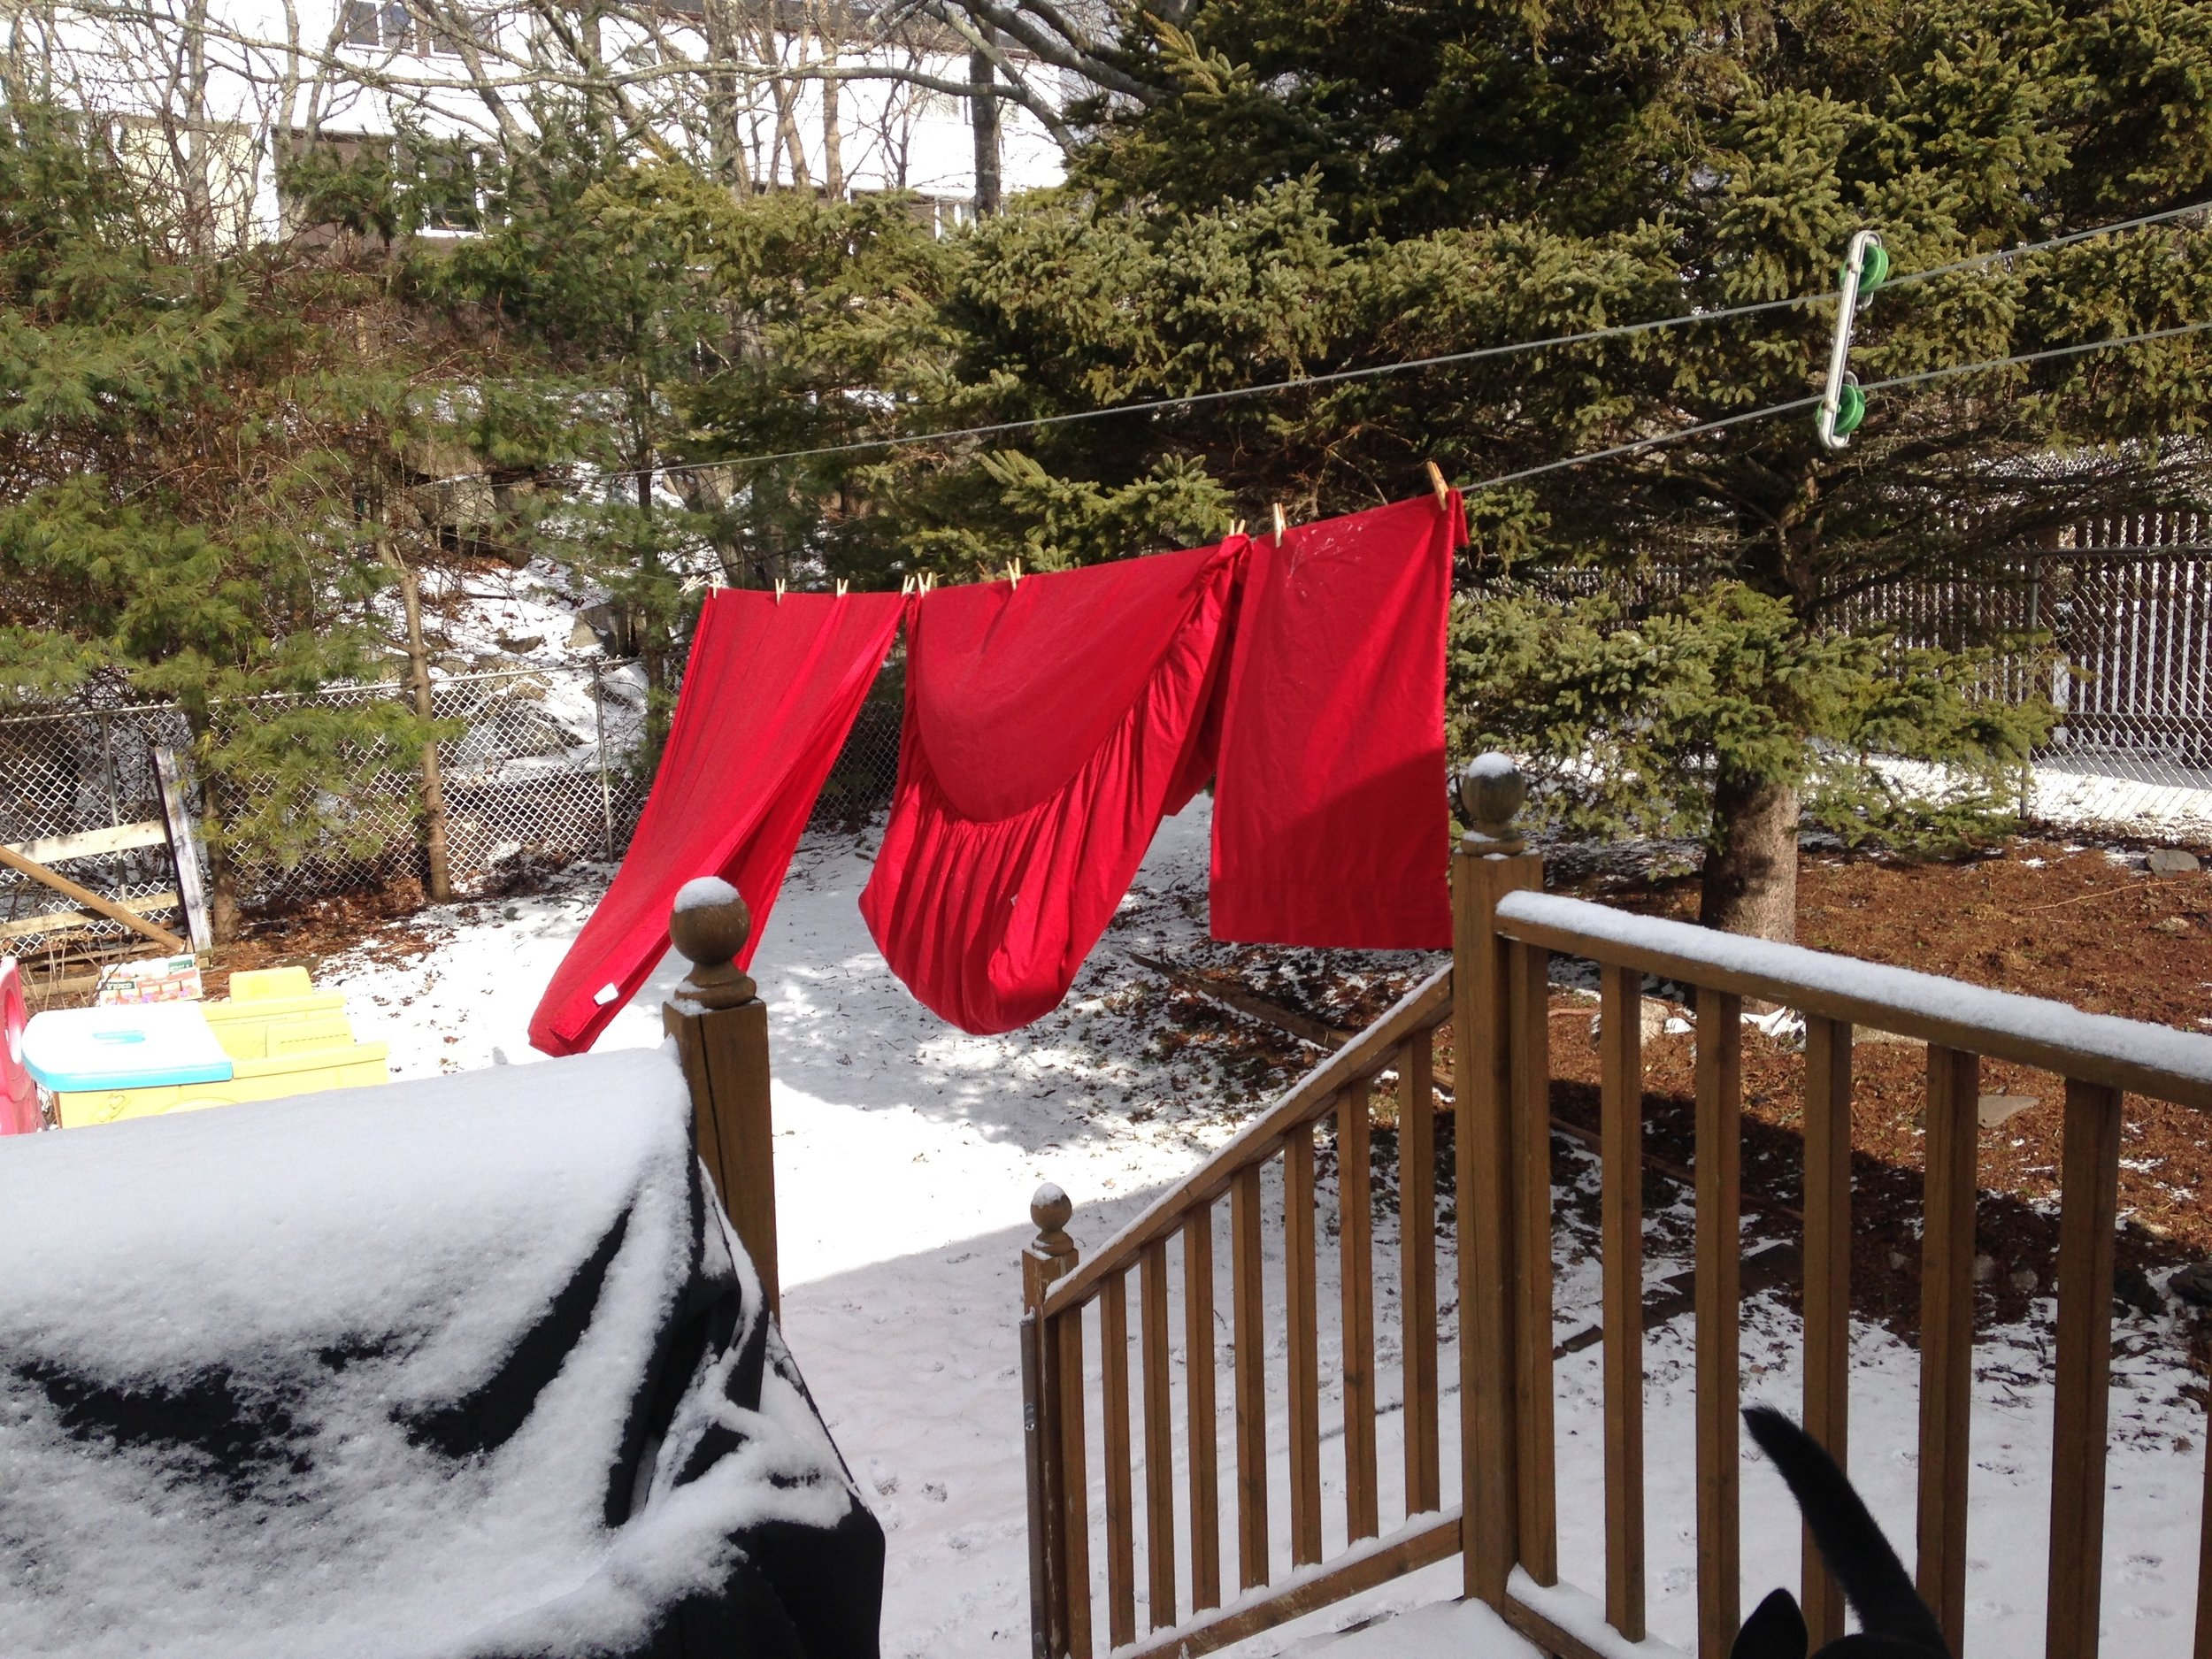 Clean bed sheet on clothes line in the spring